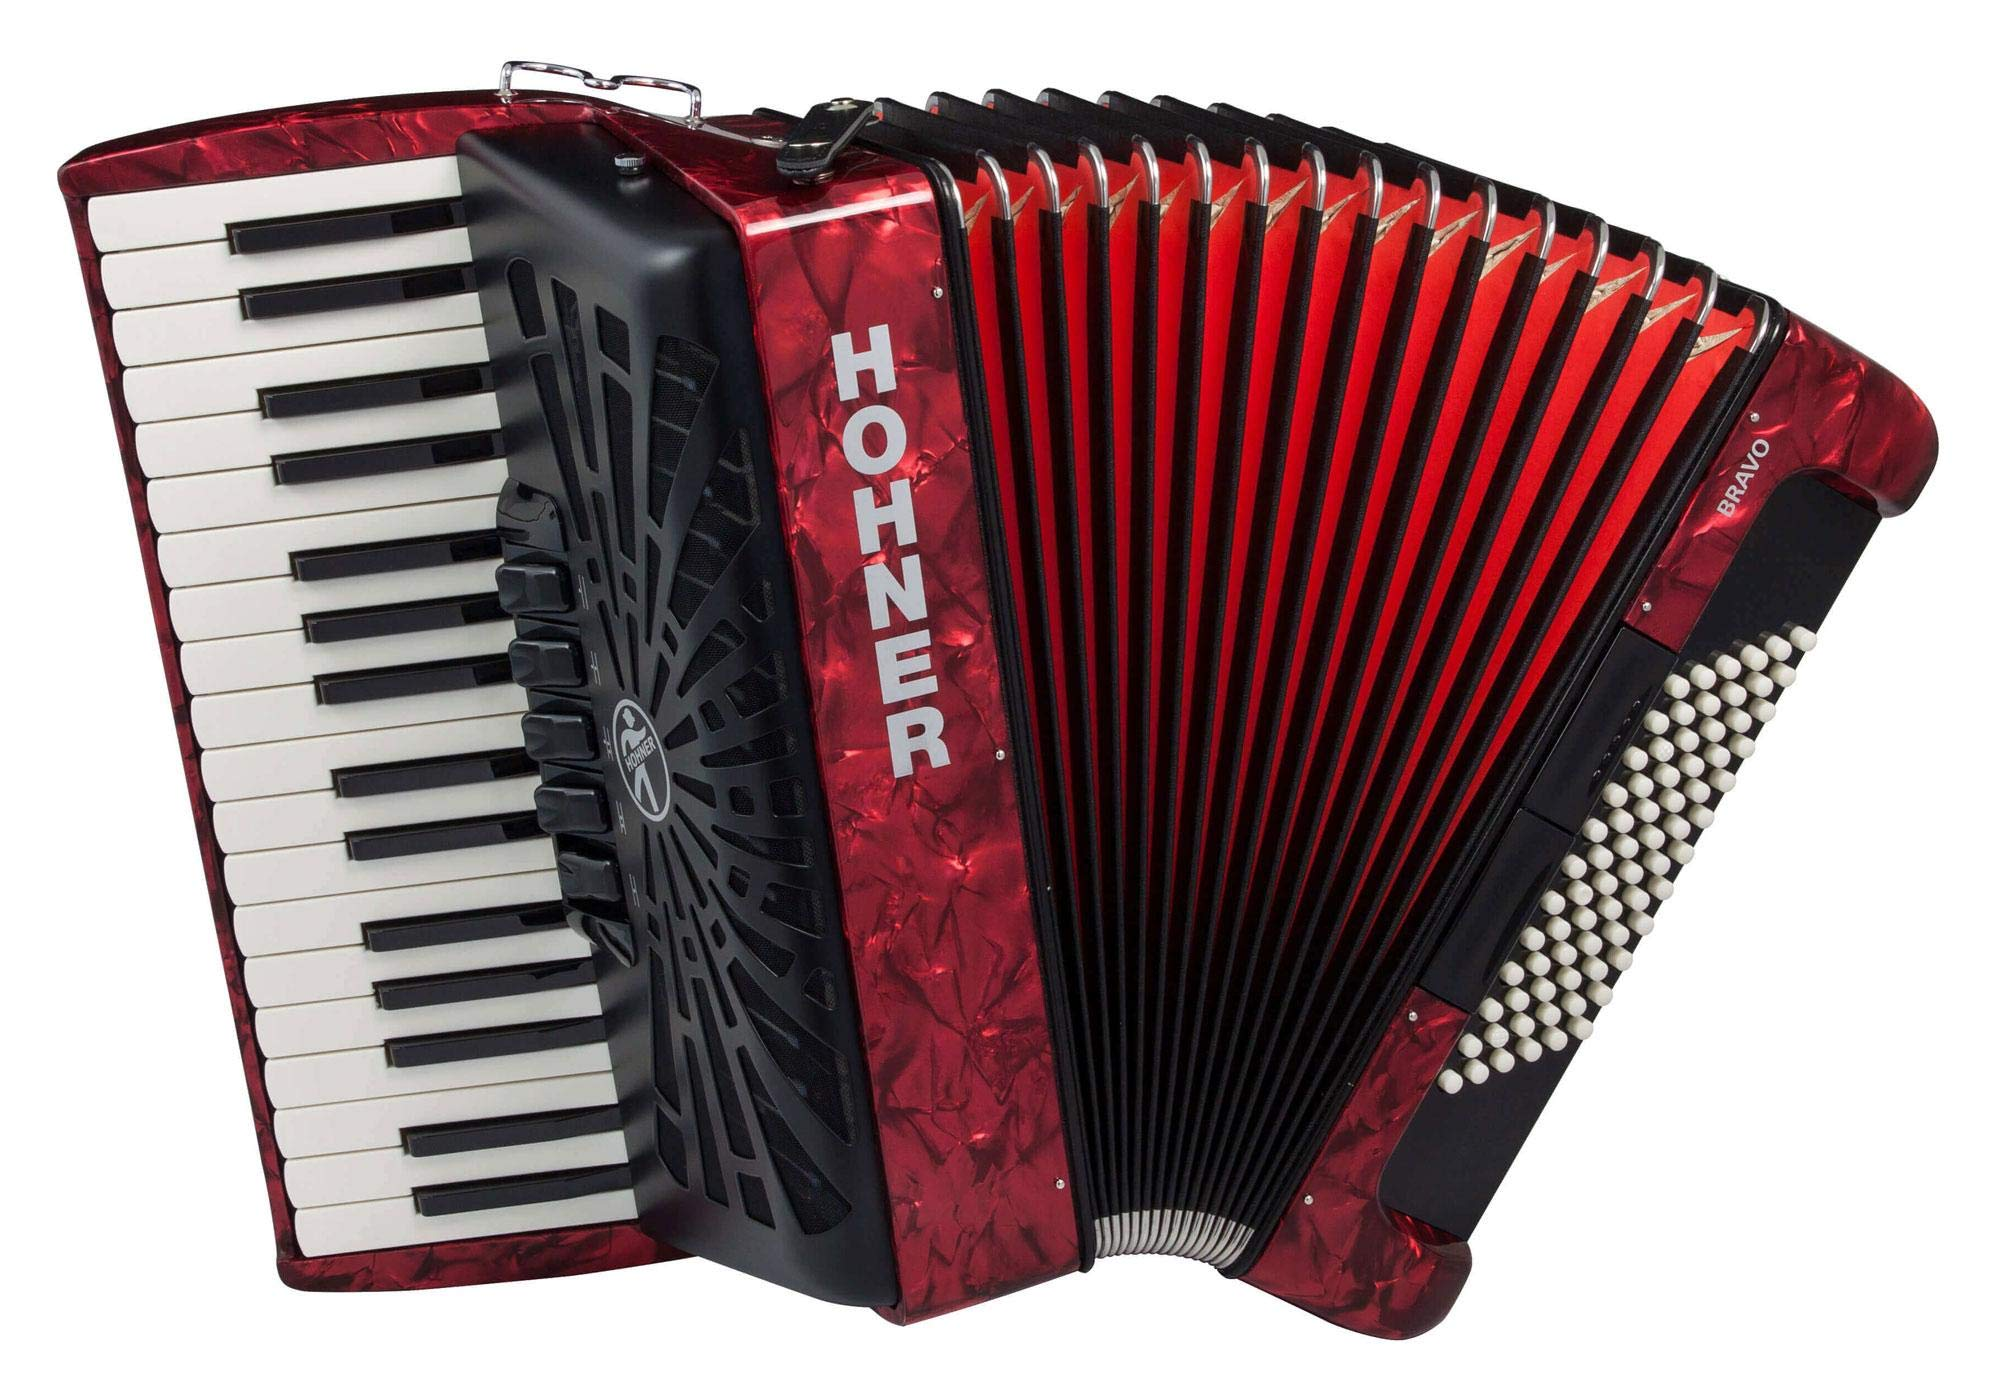 Hohner A16631S Bravo Line Facelift III -72 Bass Chromatic Piano Accordion with Gig Bag, Red